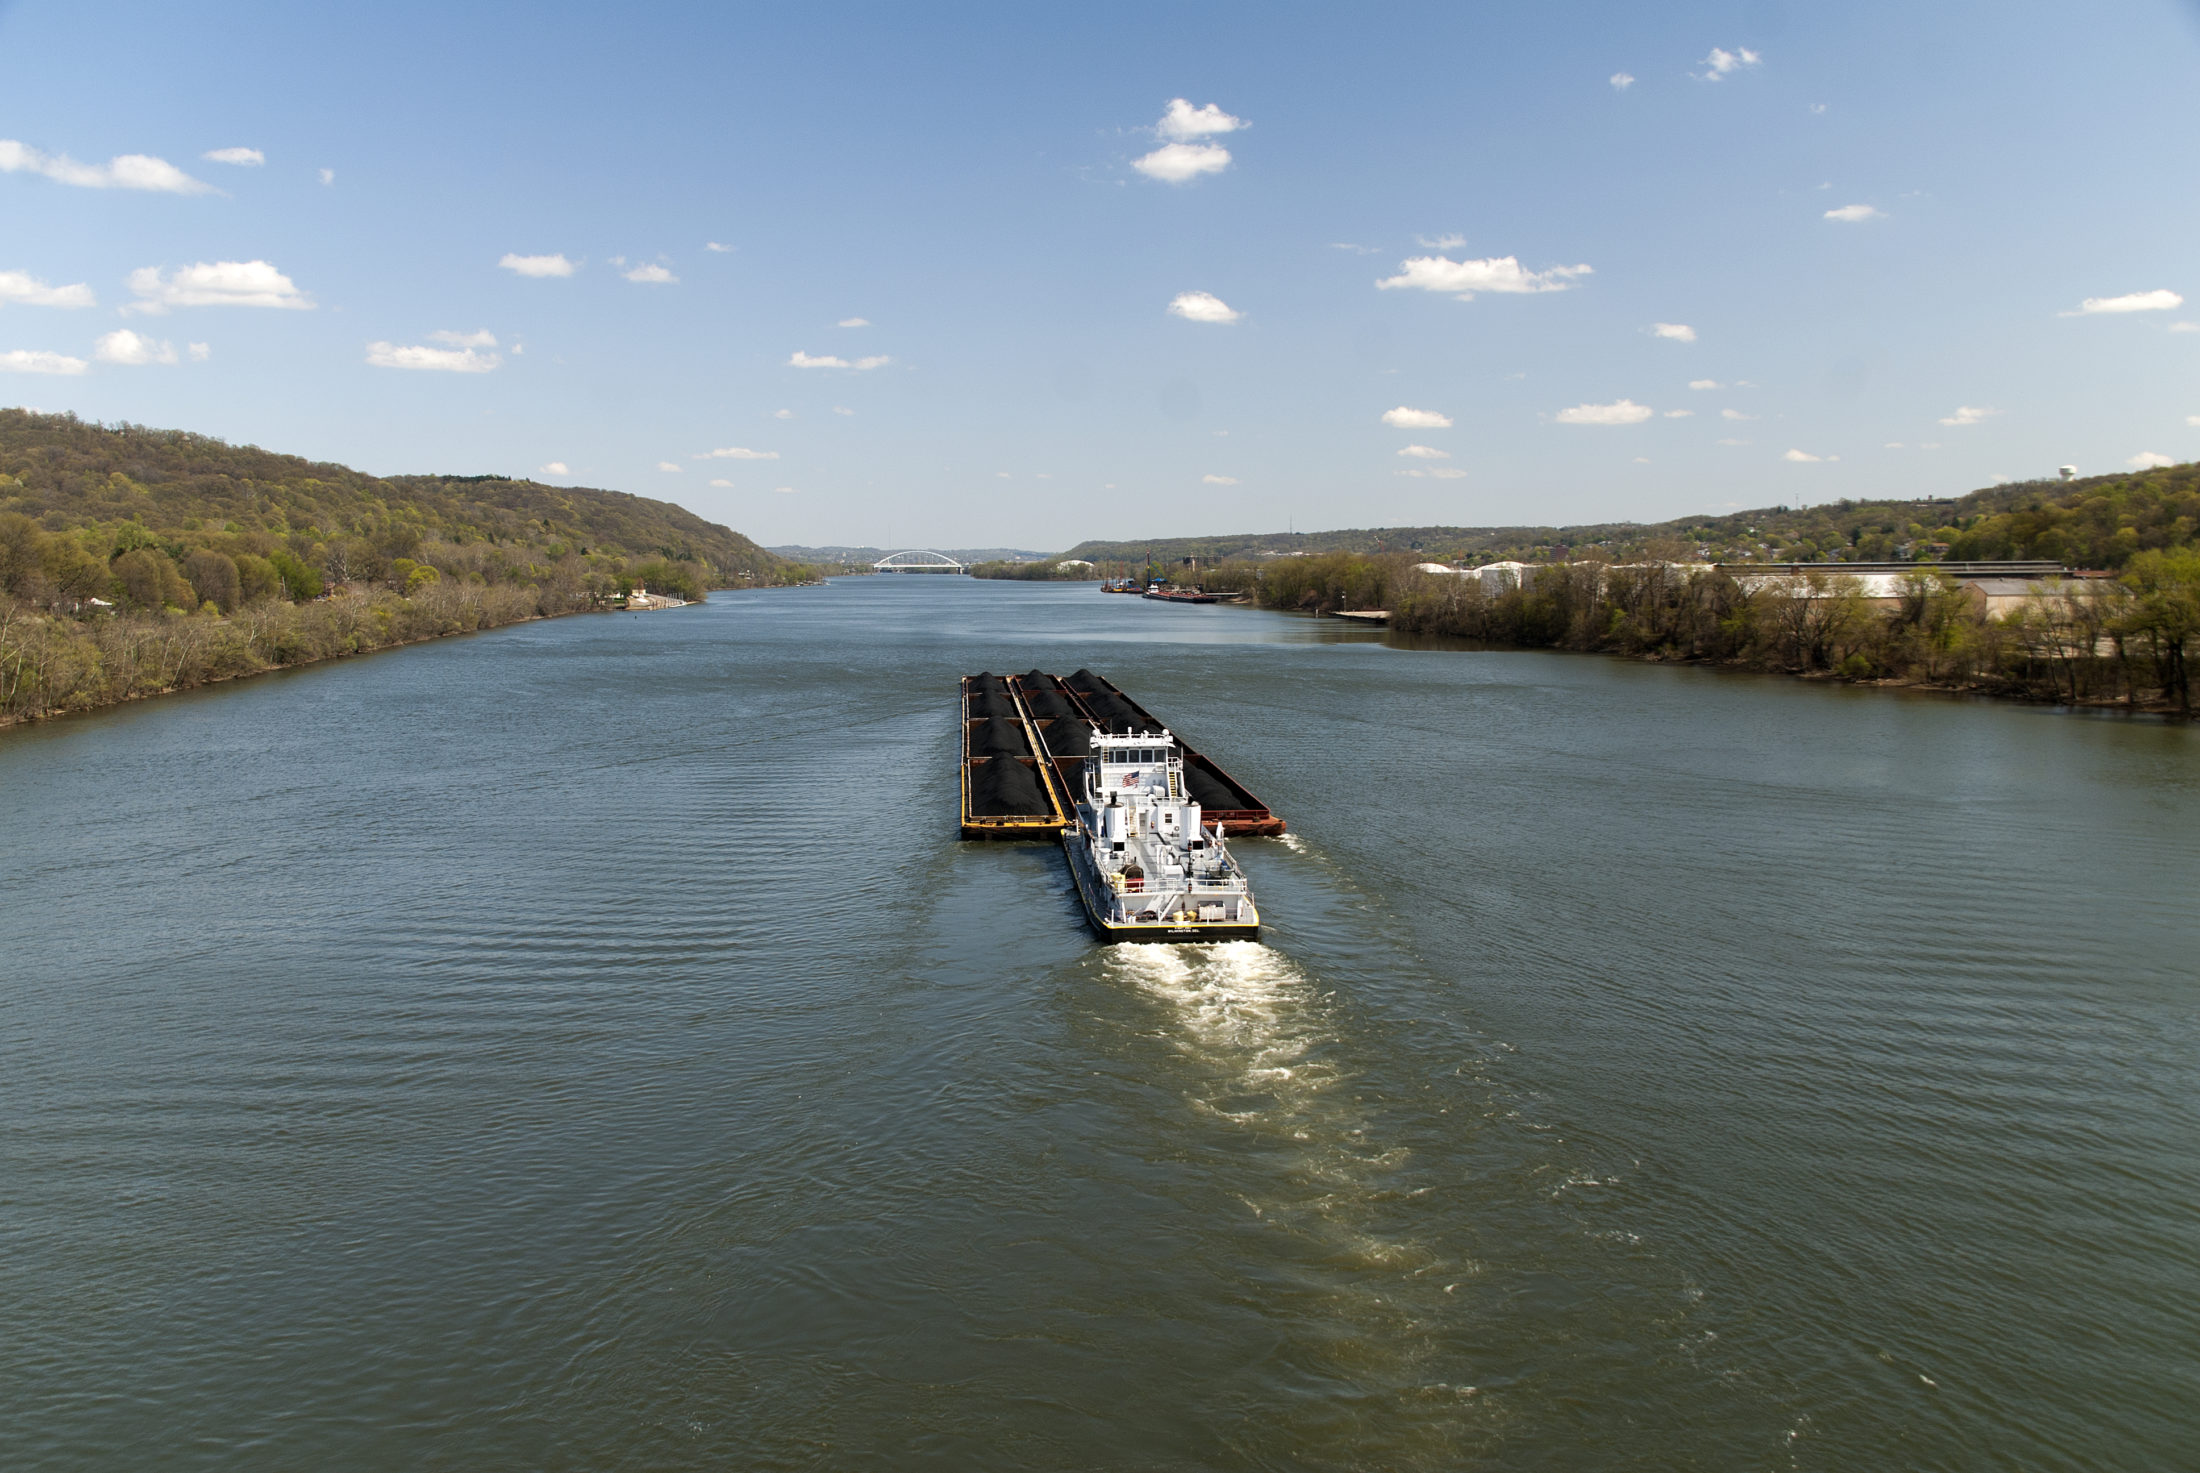 A coal freighter moves upriver